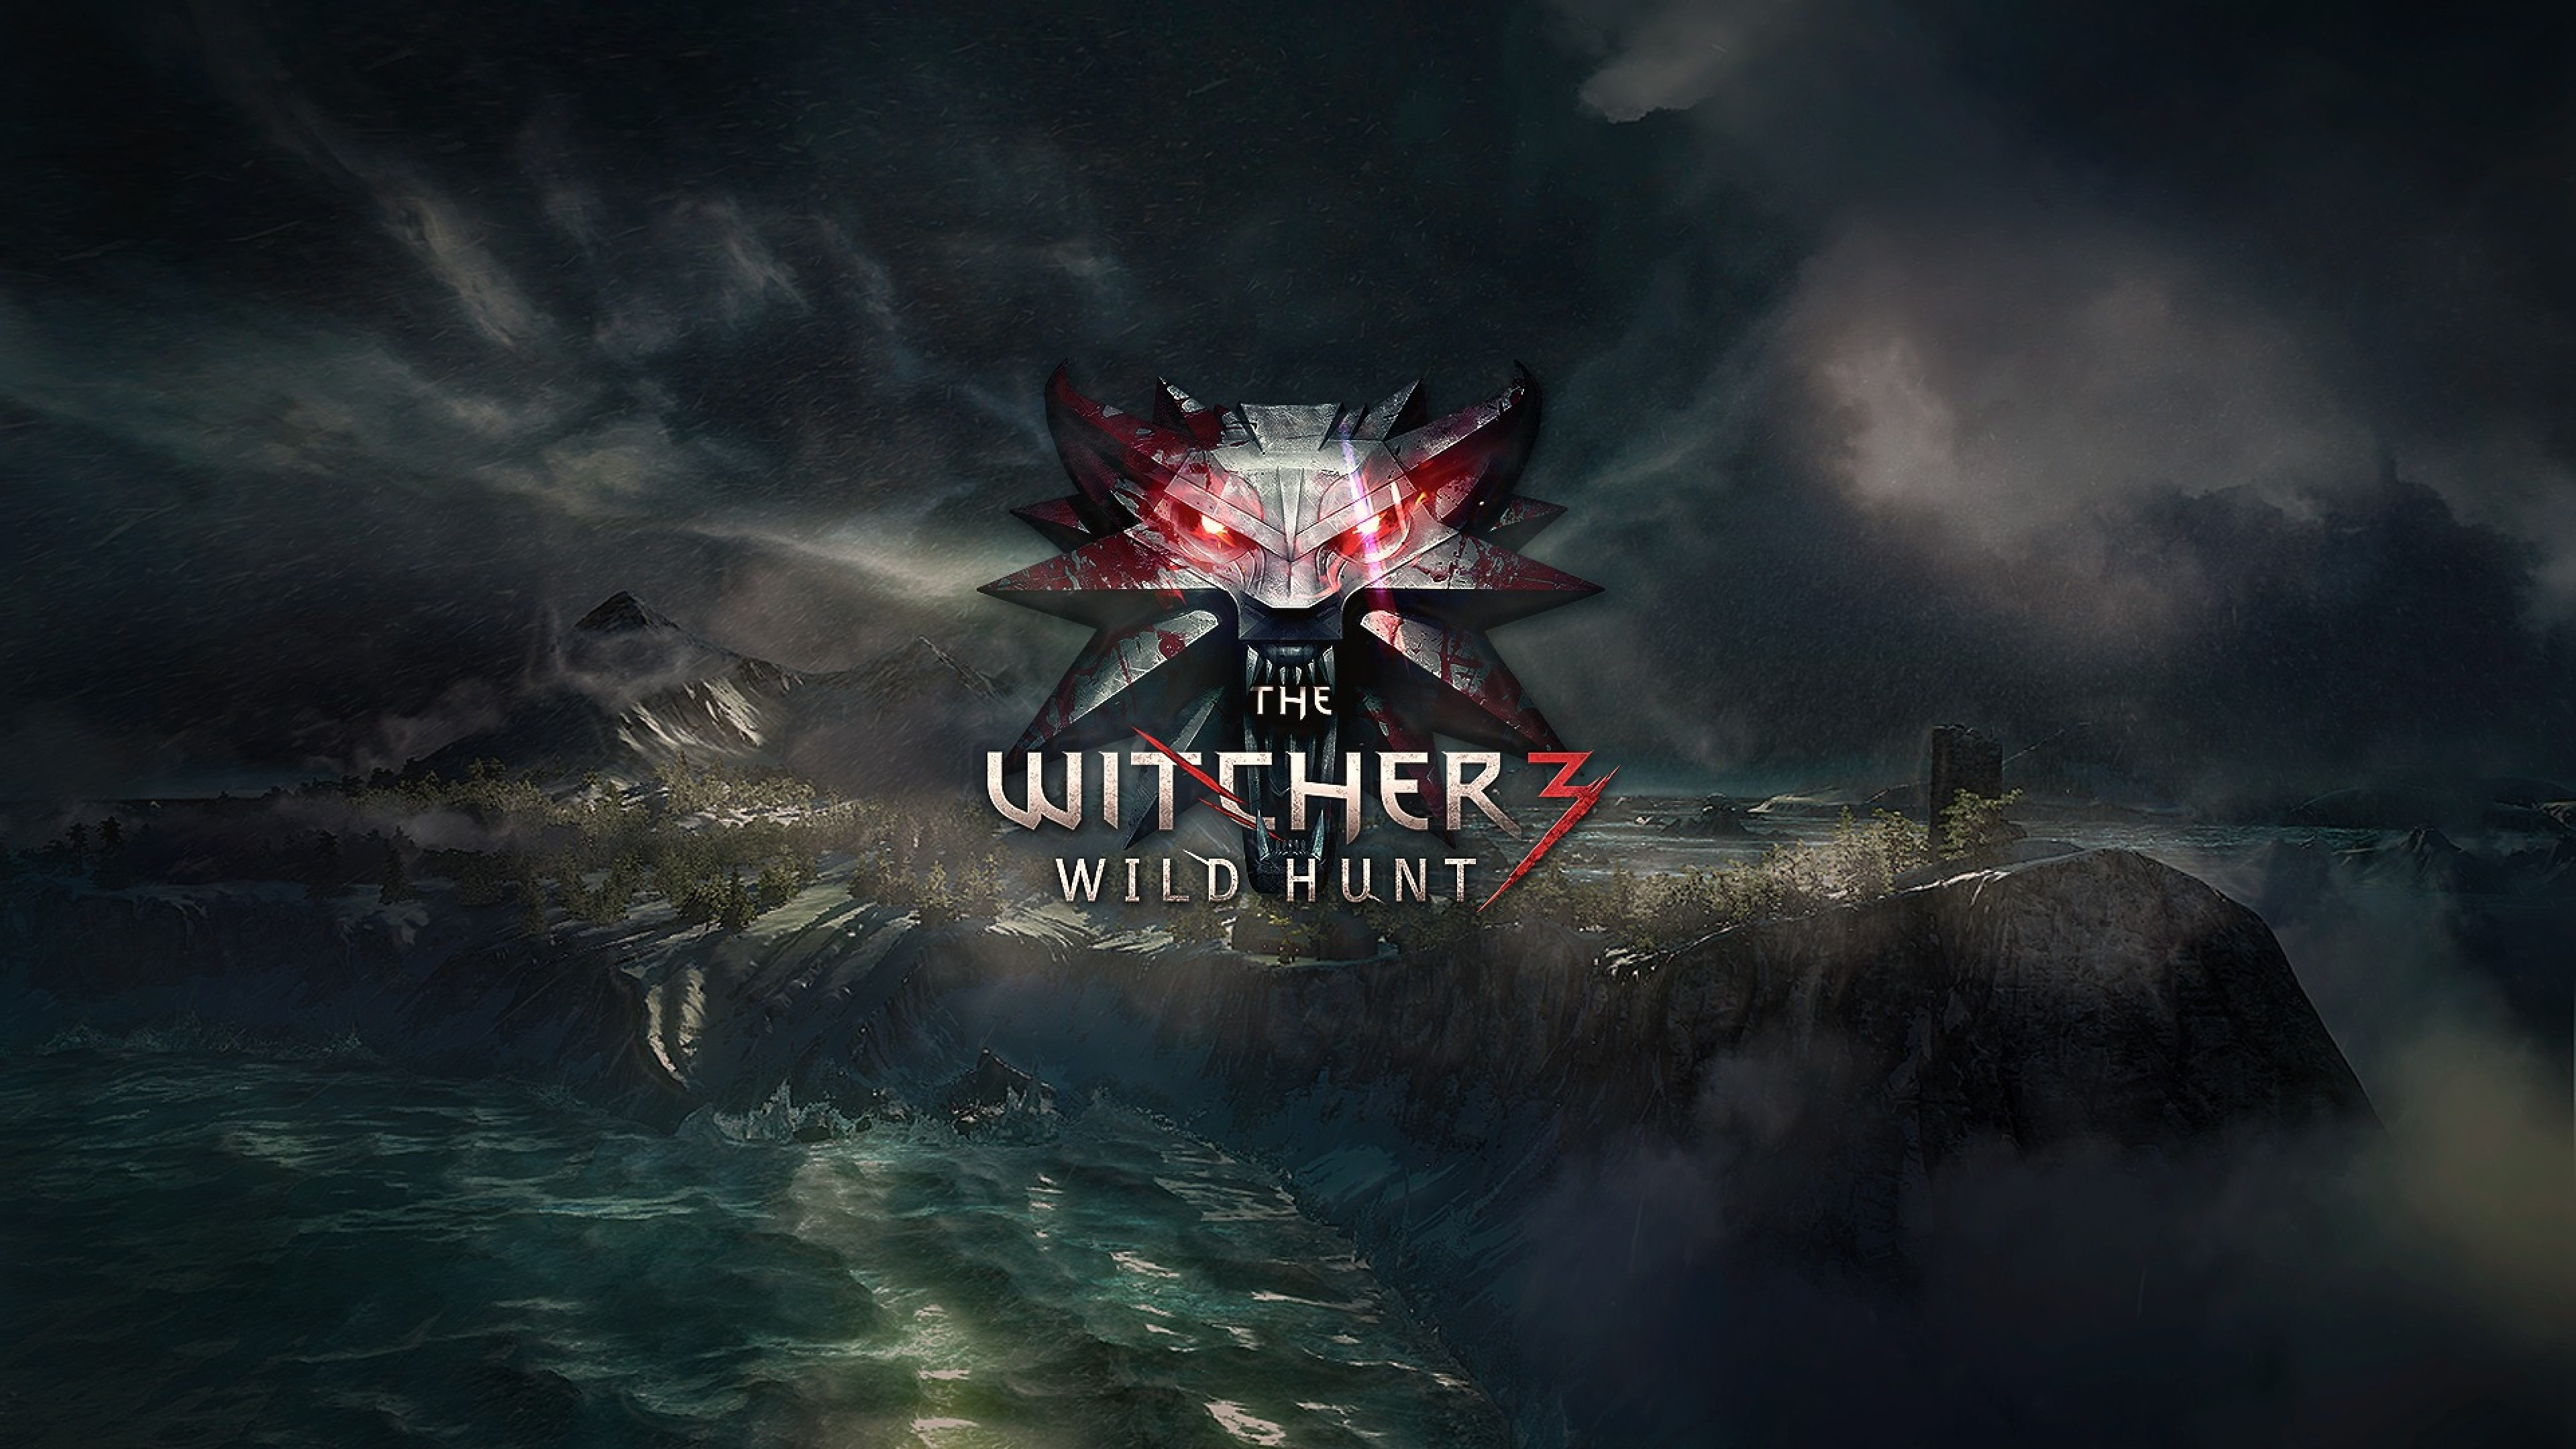 The Witcher 3 Wallpaper 4k 62 Immagini